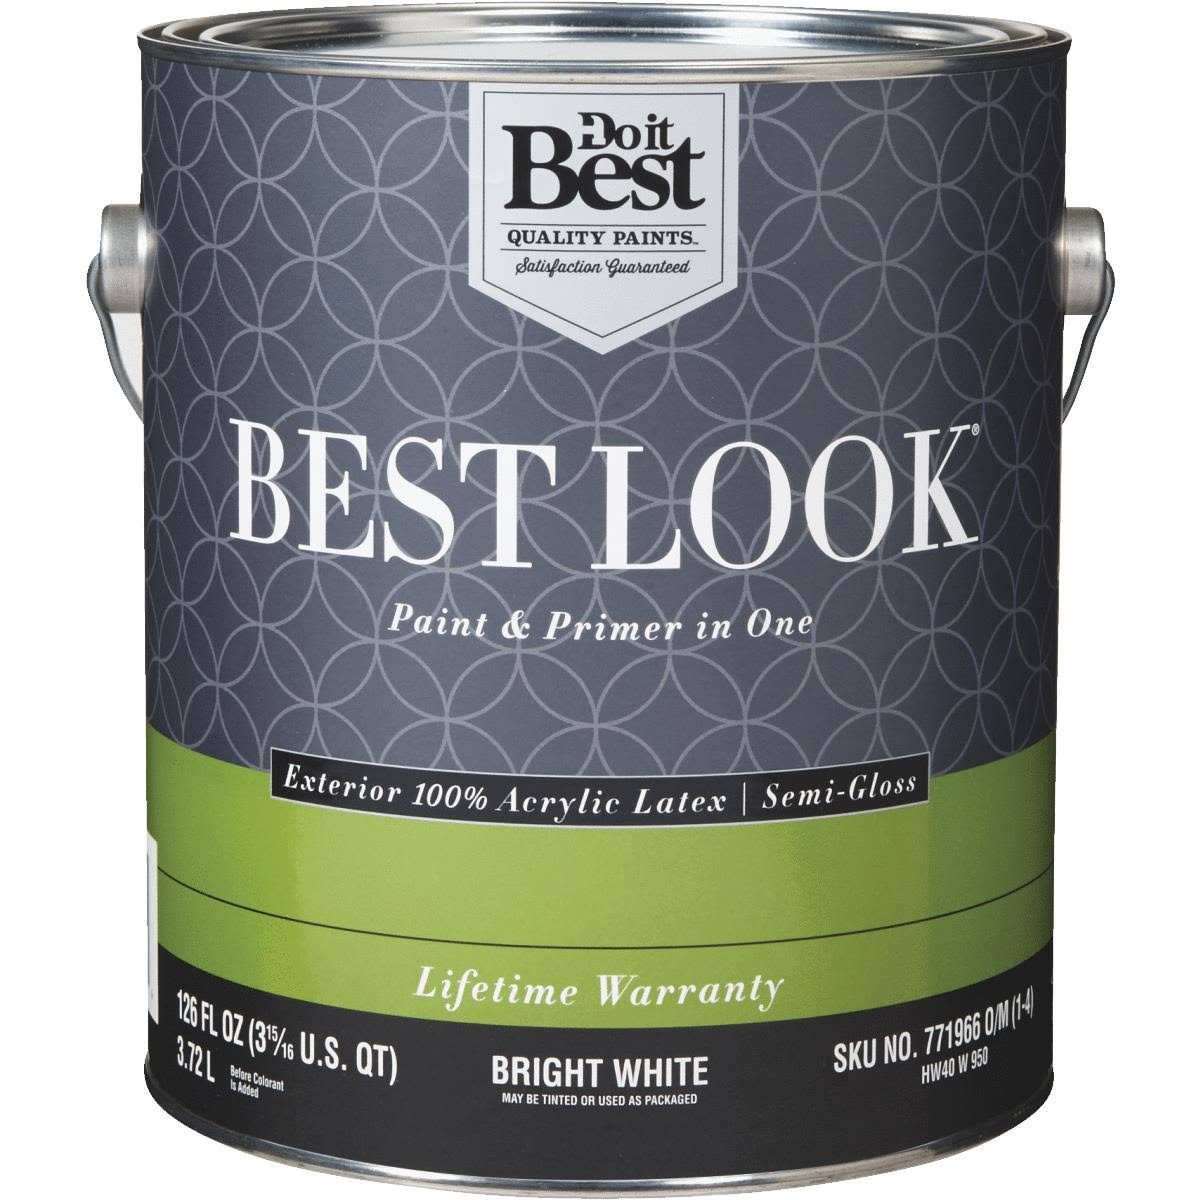 - HW40W0950-16 Best Look 100% Acrylic Latex Paint & Primer in One Semi-Gloss Exterior House Paint